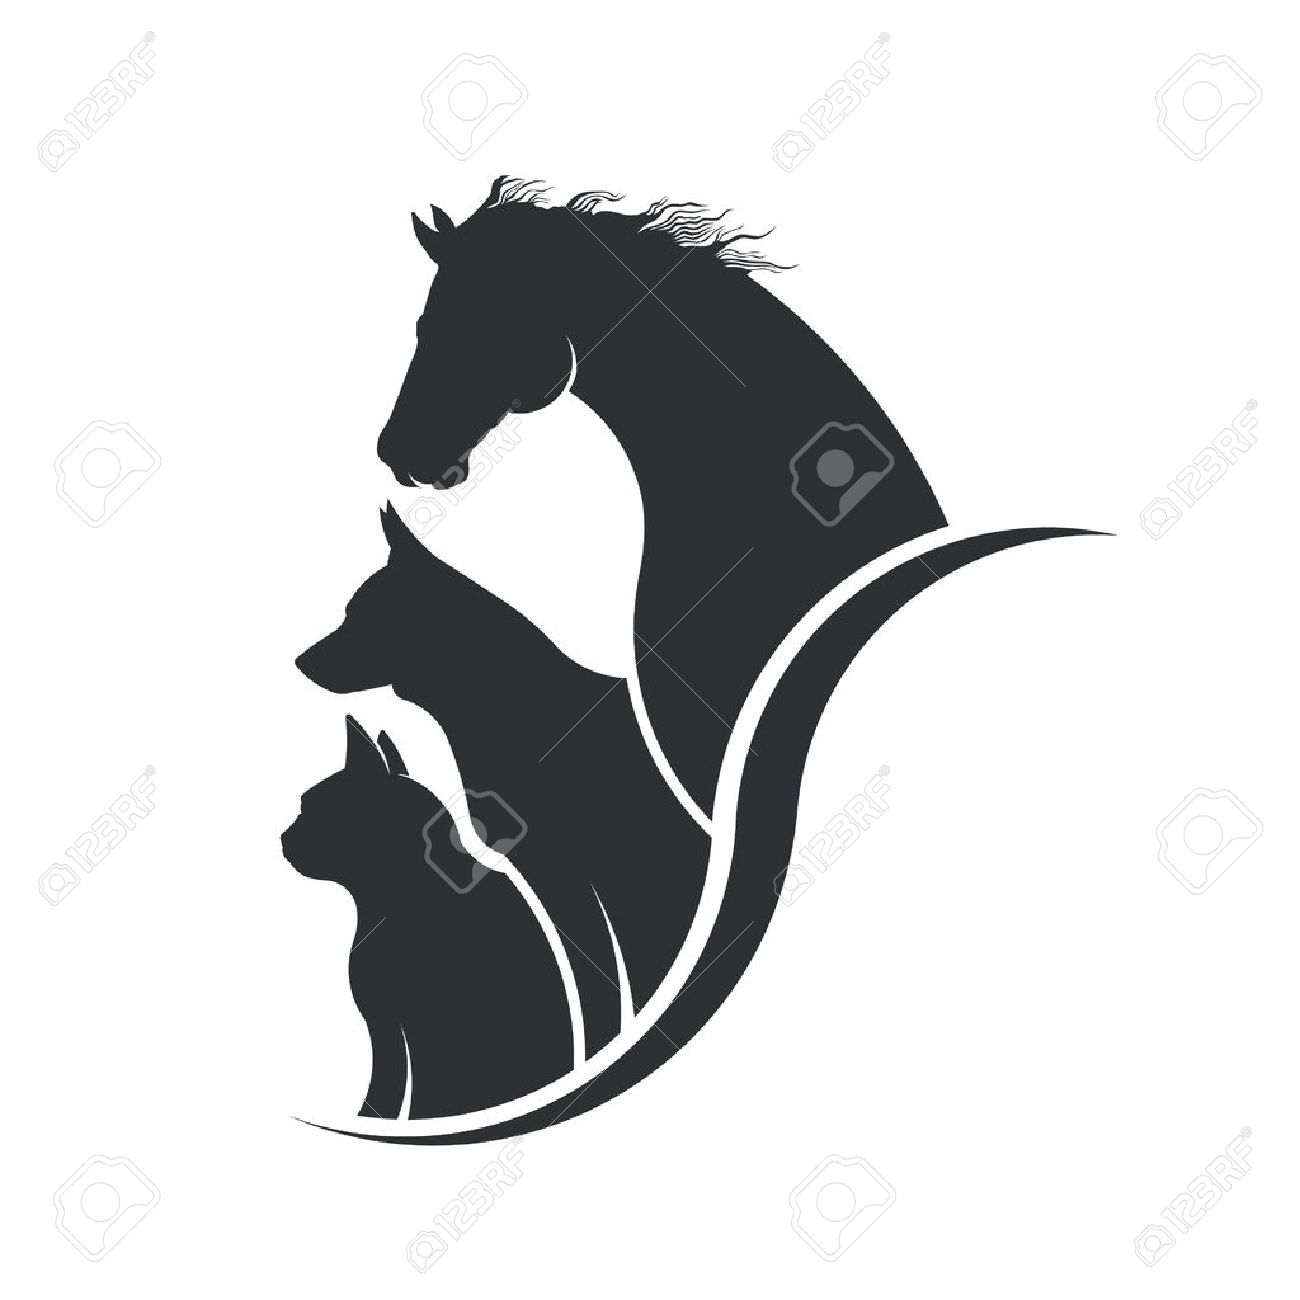 Horse, Dog, Cat Animal Lover Illustration Archivio Fotografico - 64972245